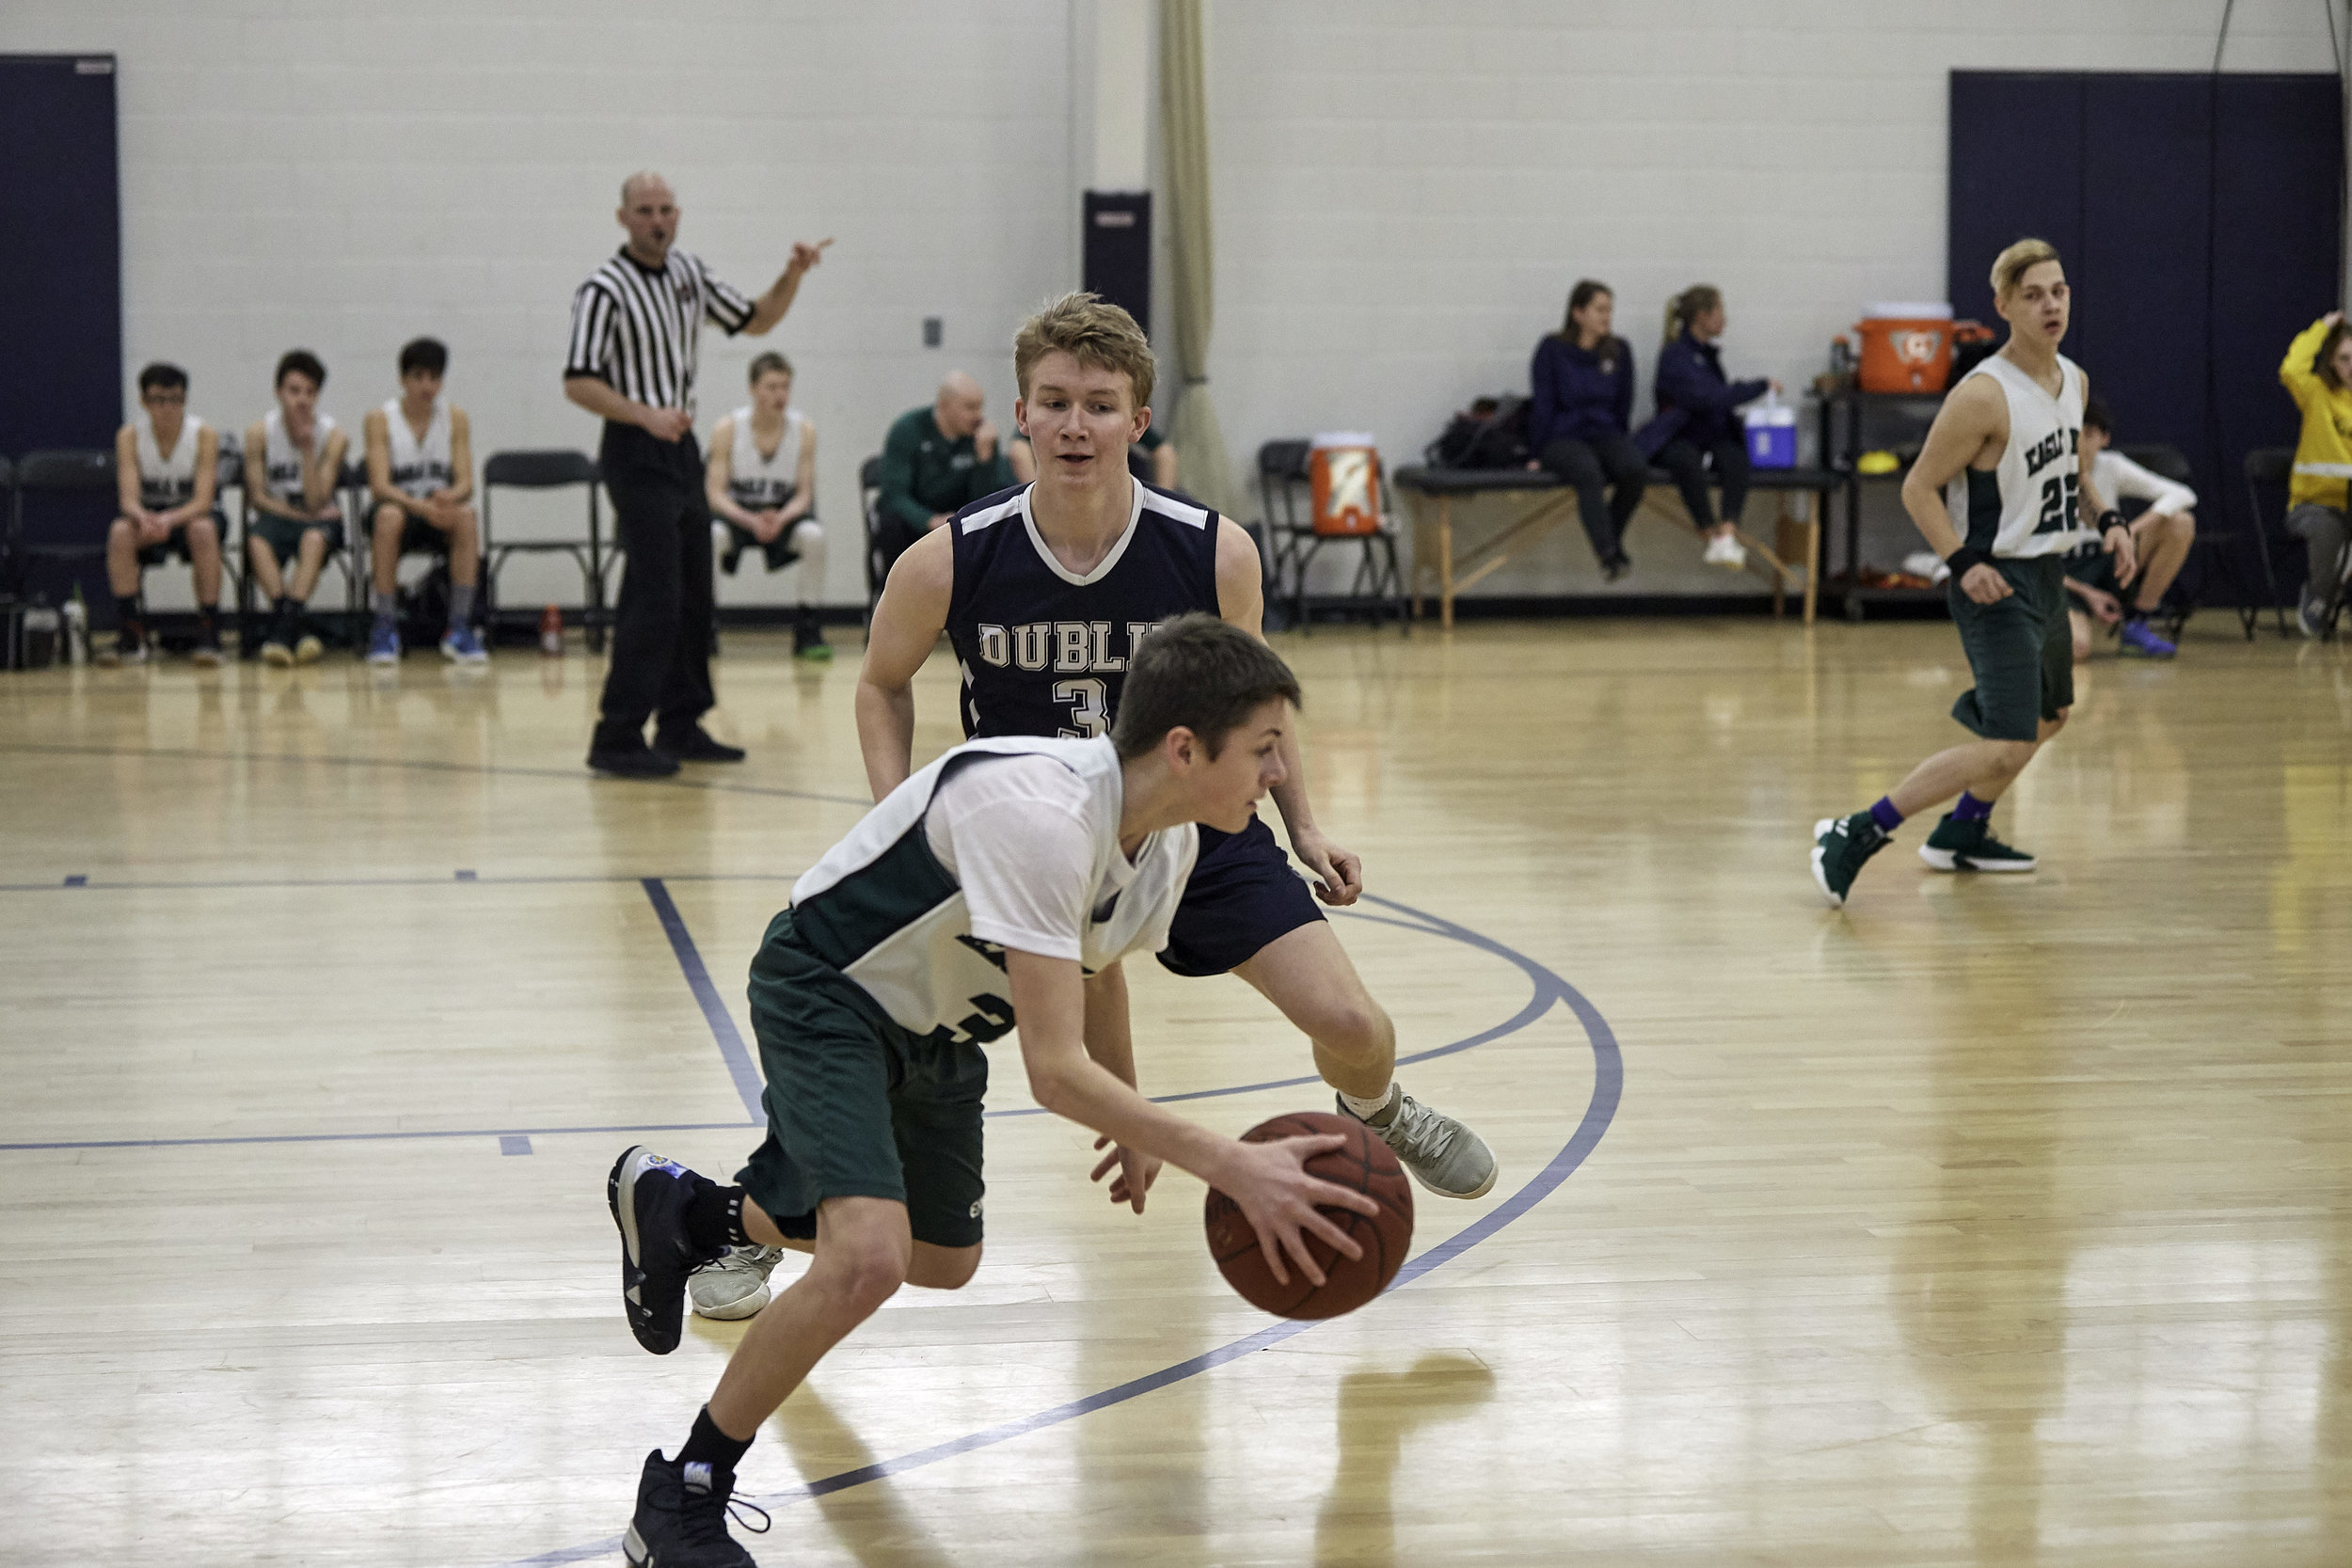 Boys Varsity Basketball vs. Eagle Hill School JV at RVAL Tournament - February 11, 2019 - 167700.jpg